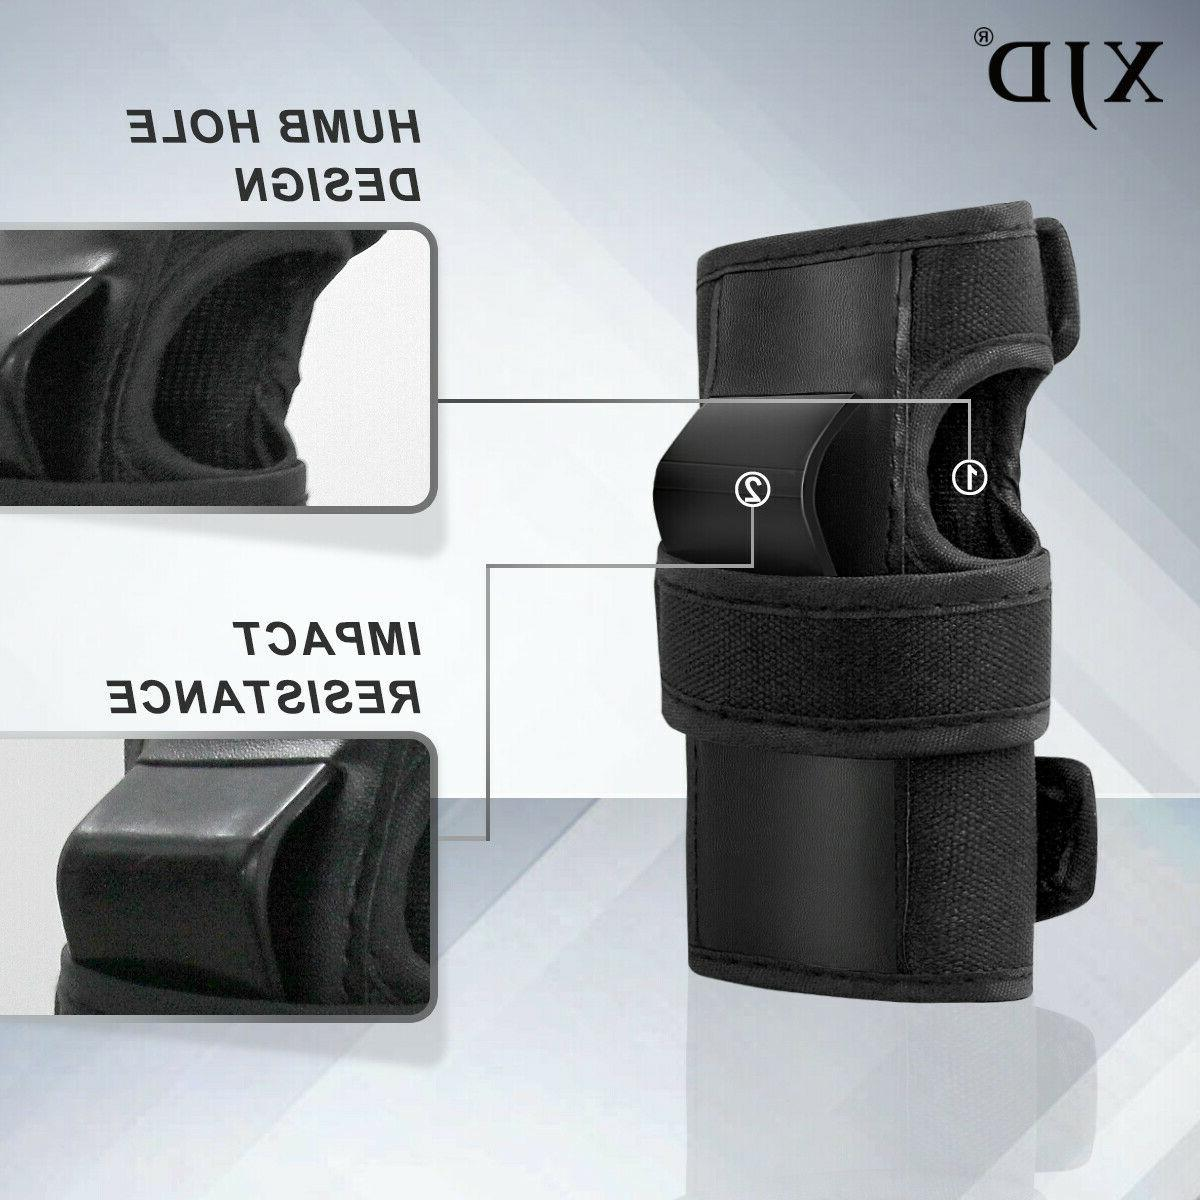 XJD Kids Protective Set in Knee Pads Wrist Guard